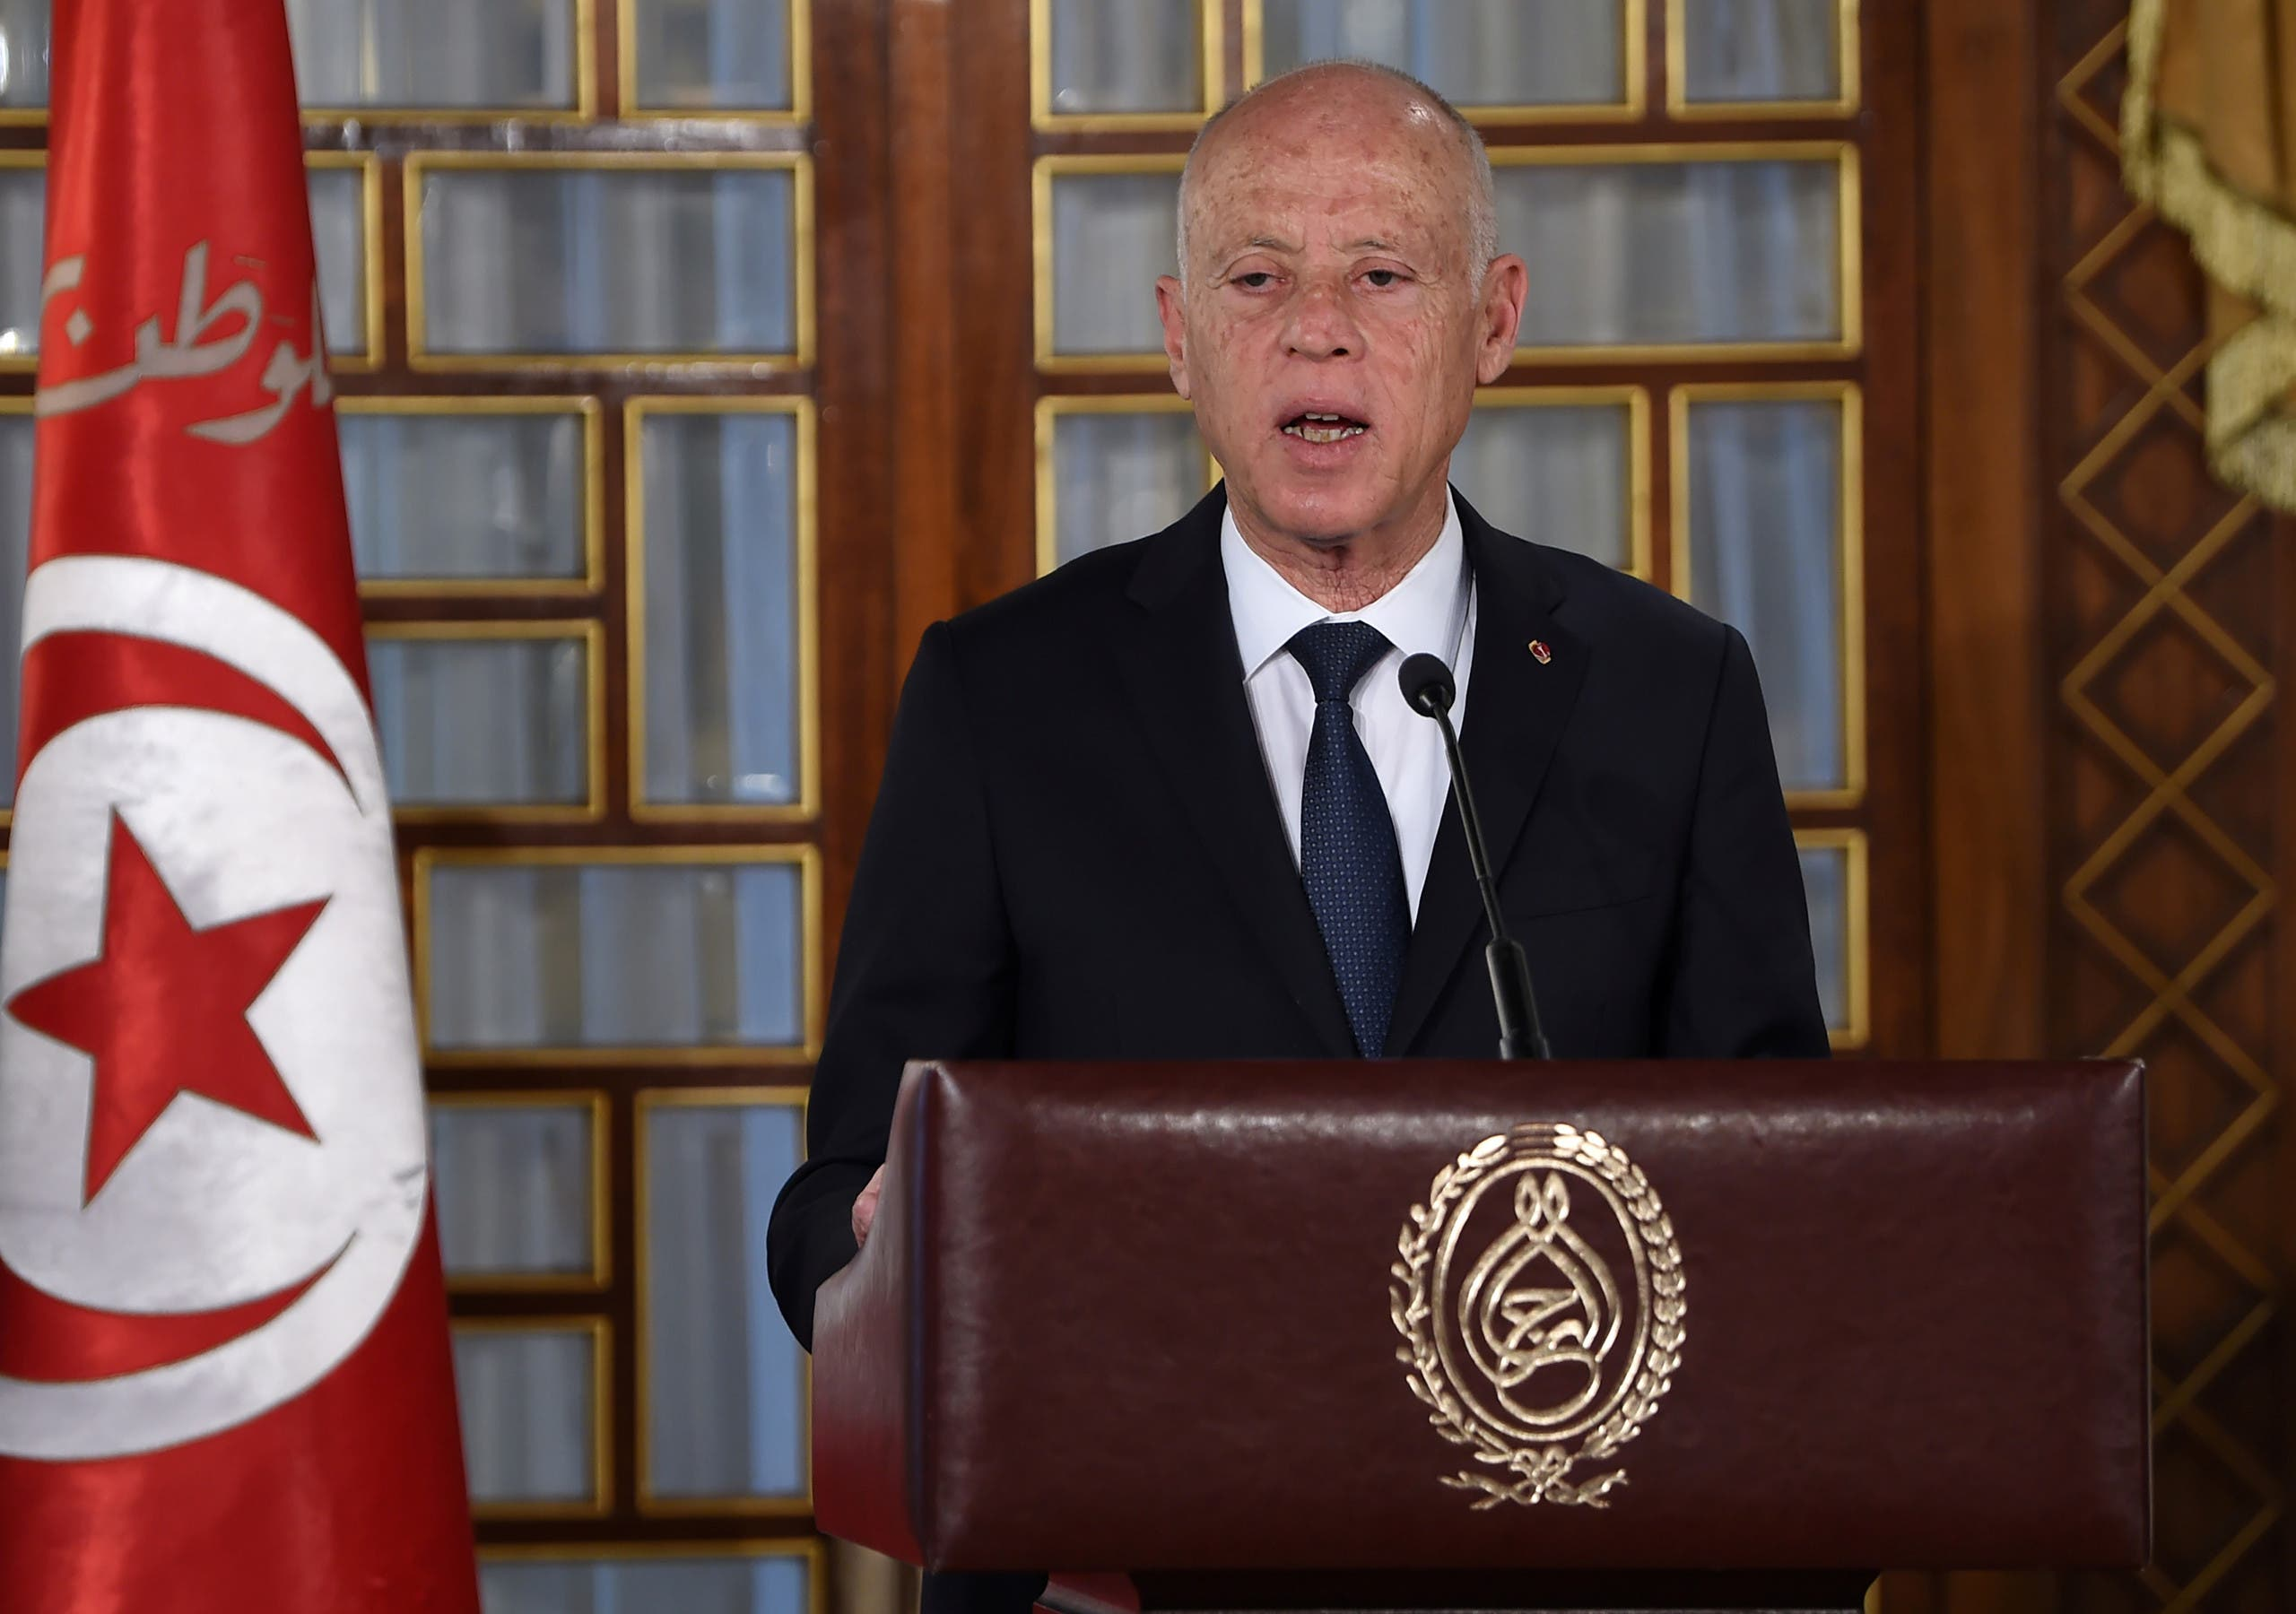 Tunisia's President Kais Saied gives a speech at the government's swearing-in ceremony at the Carthage Palace outside the capital Tunis, Tunisia, on February 27, 2020. (Reuters)